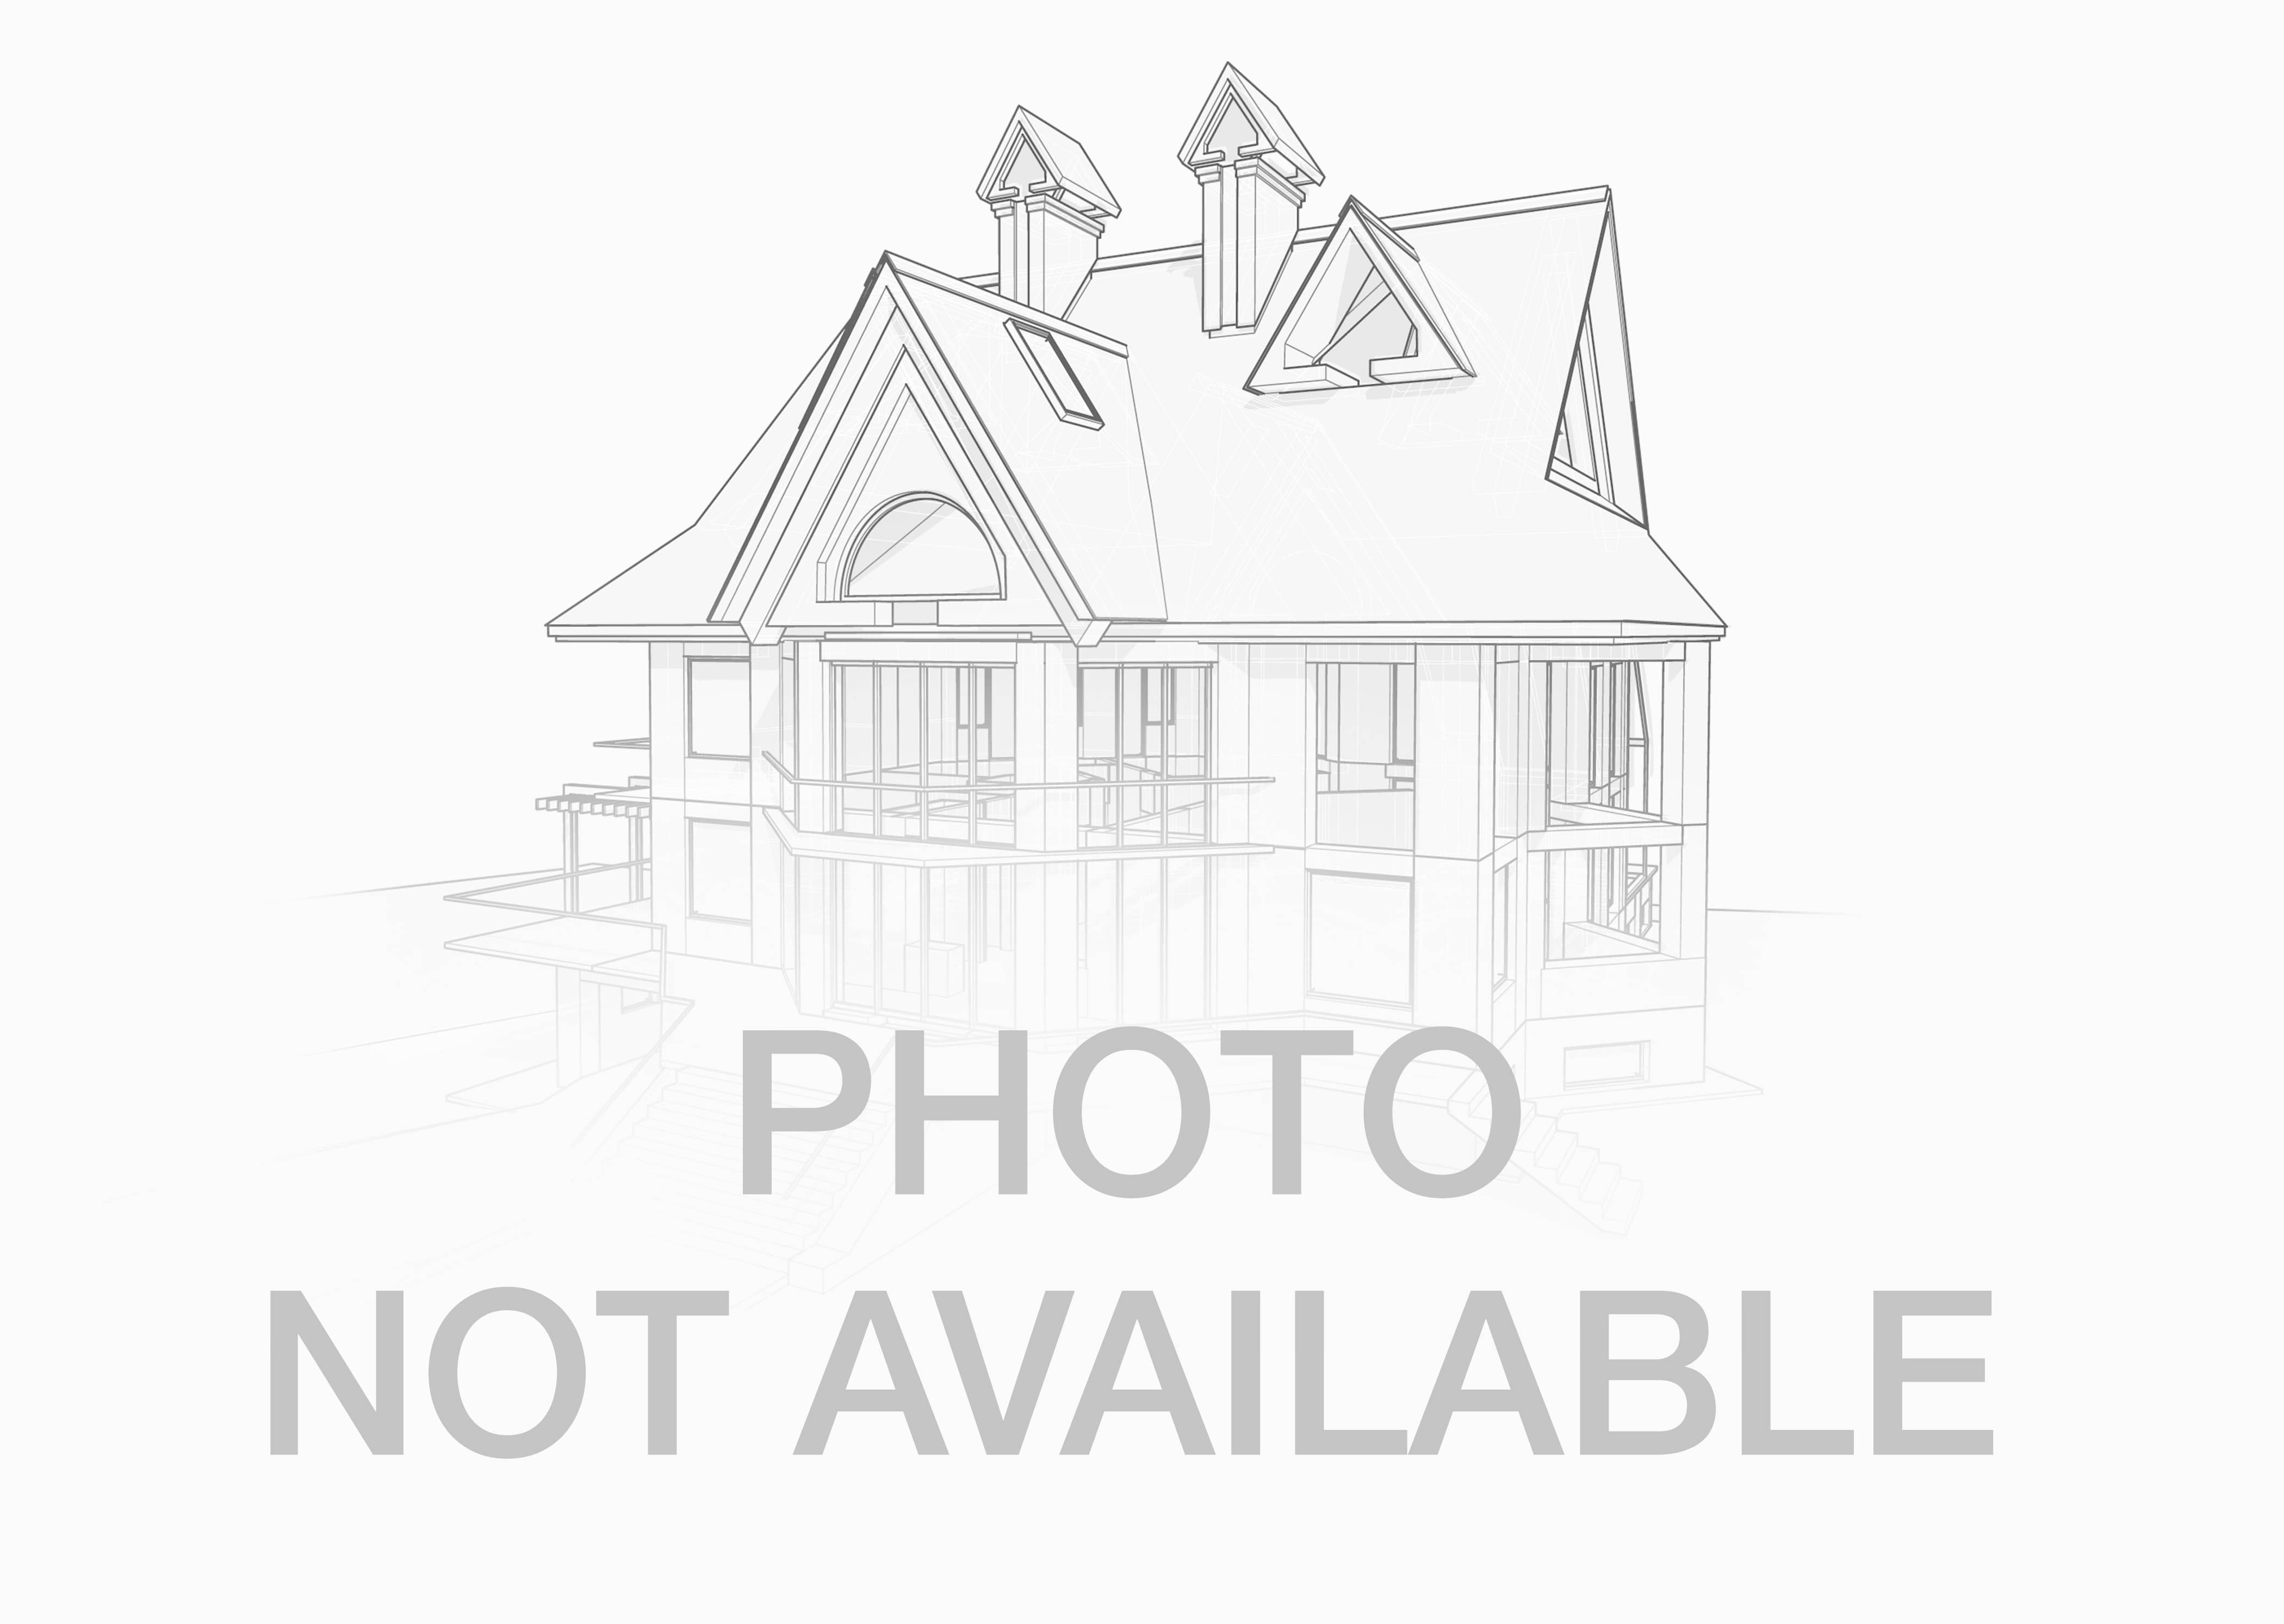 Pat Heim with Counselor Realty: Listings Search Results